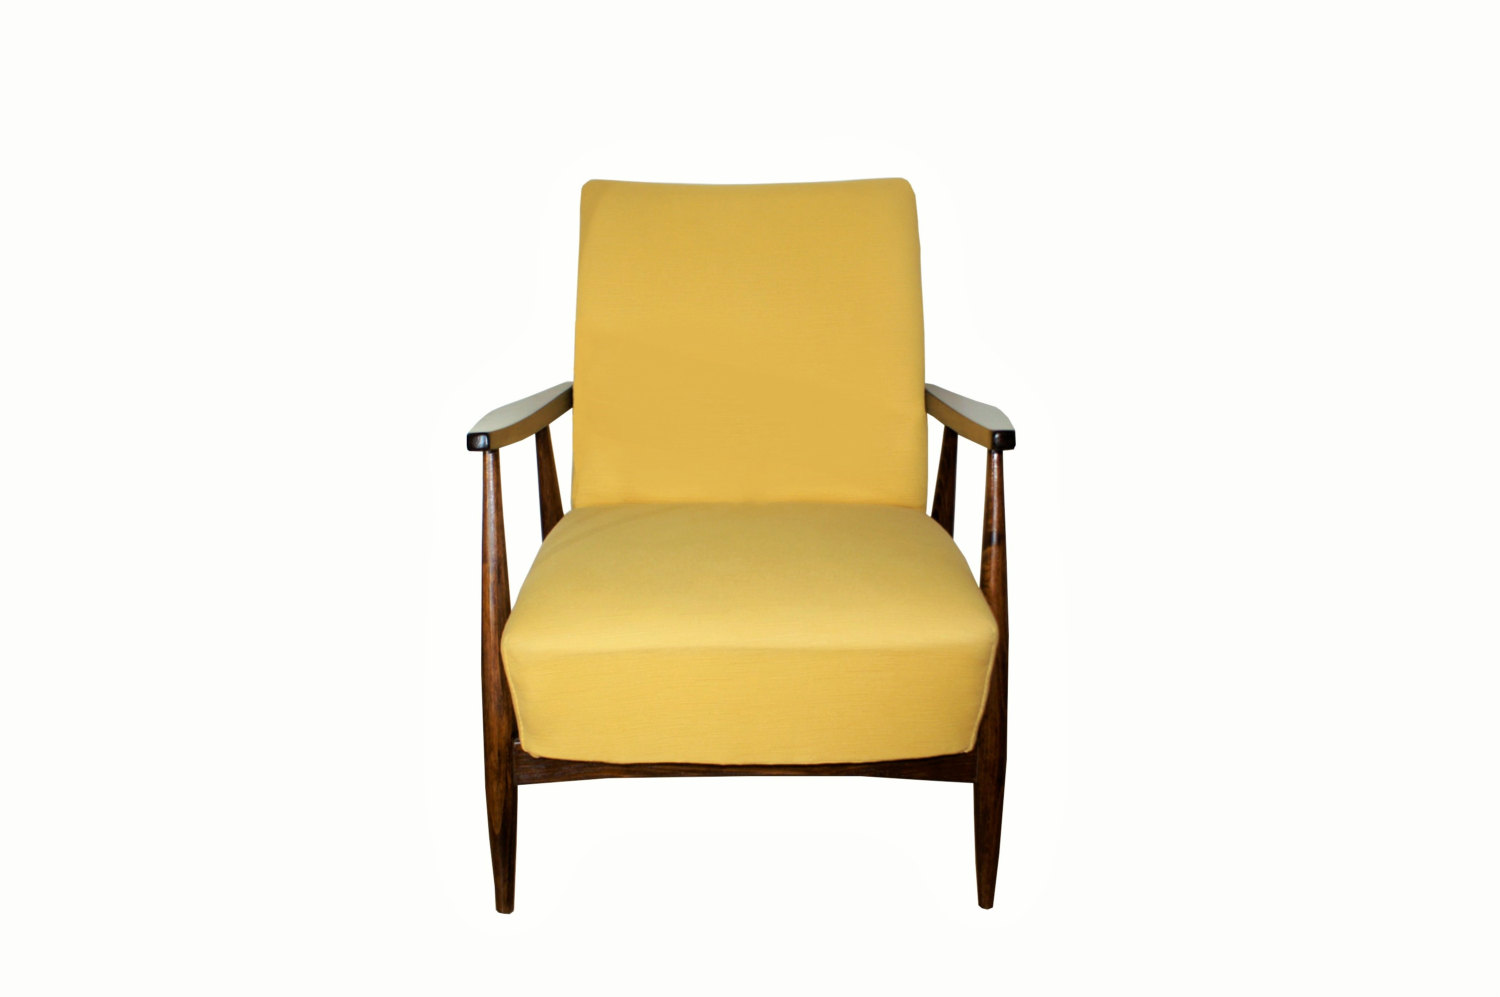 Refurbished Mcm Armchair Yellownut Updatechaircom